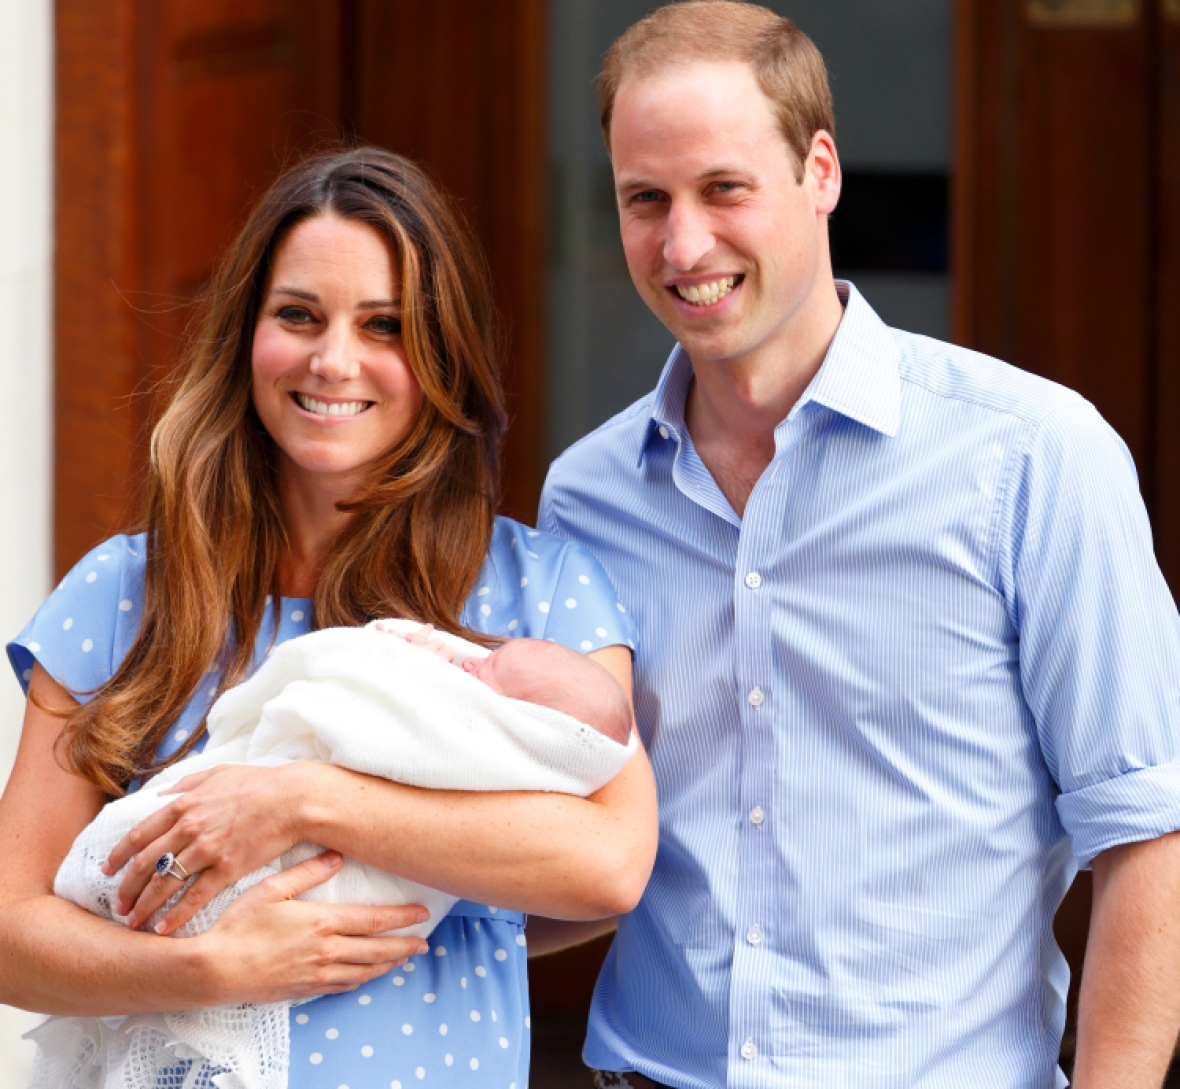 kate middleton and prince william getty images